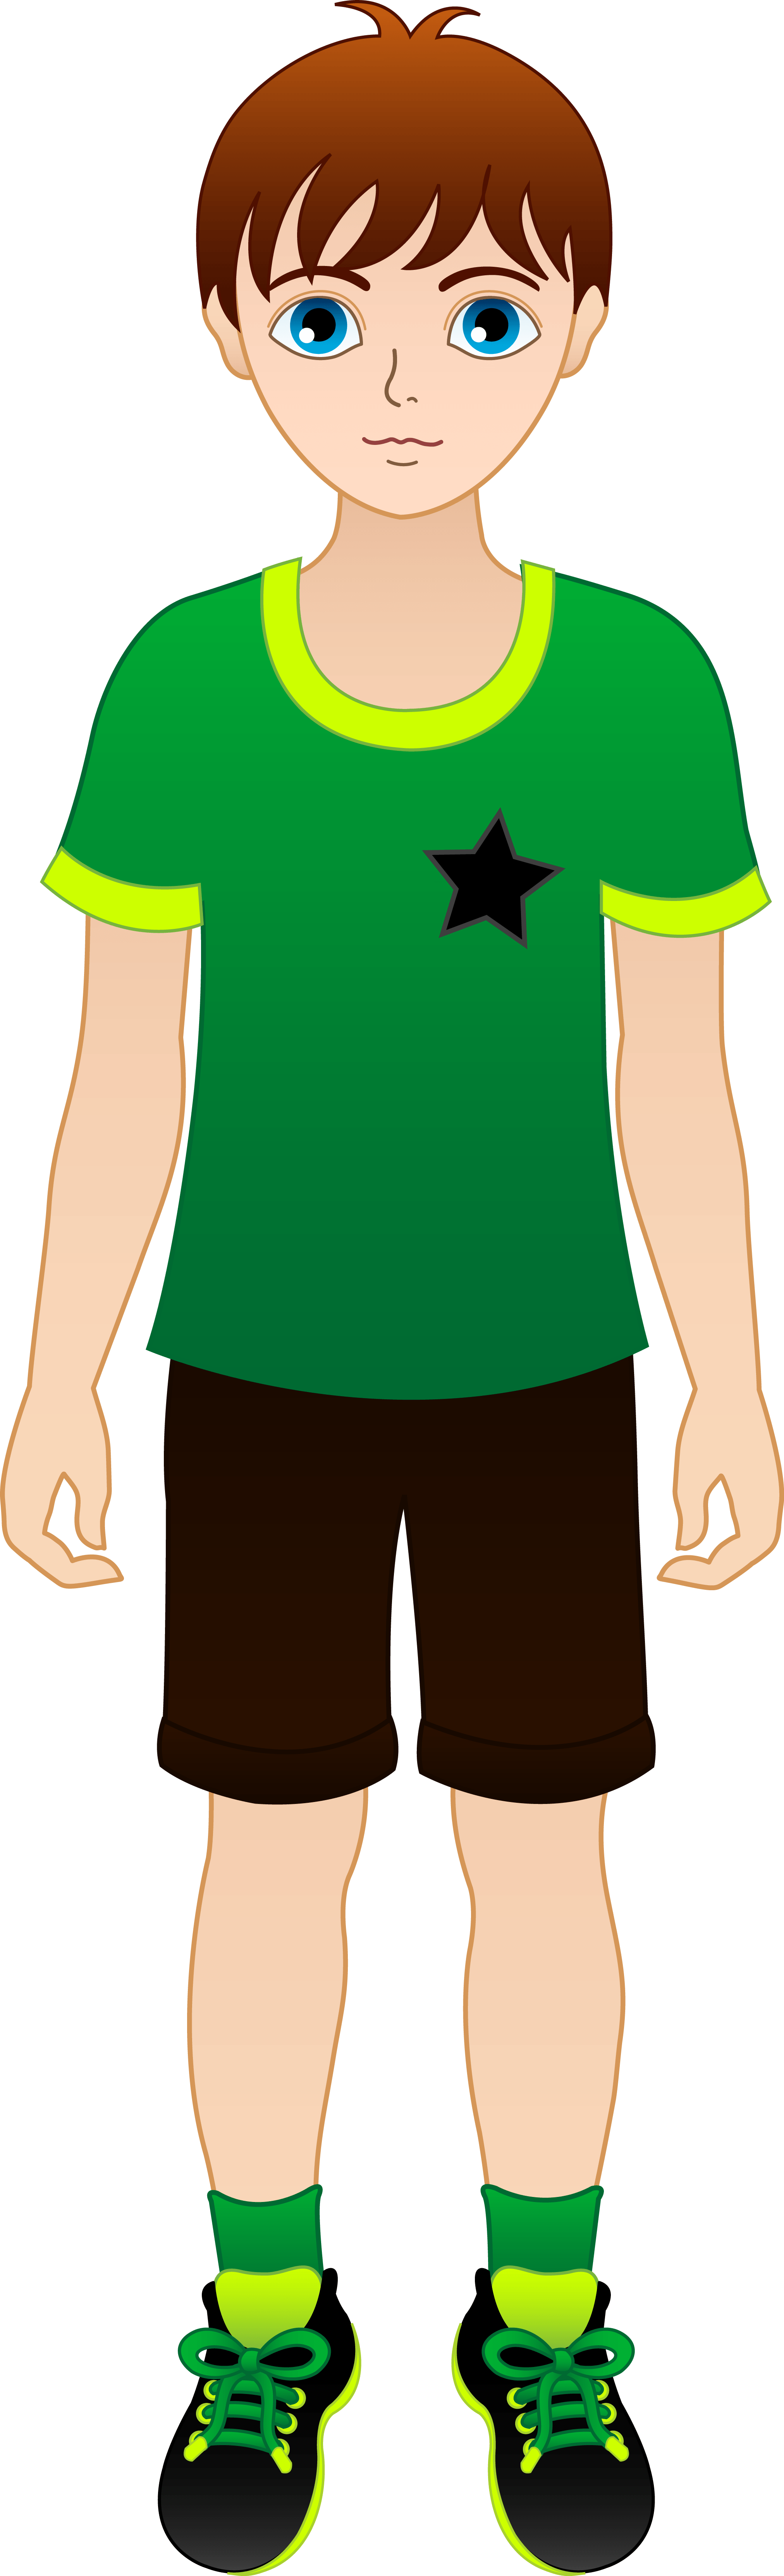 Free Teen Guy Cliparts, Download Free Clip Art, Free Clip.